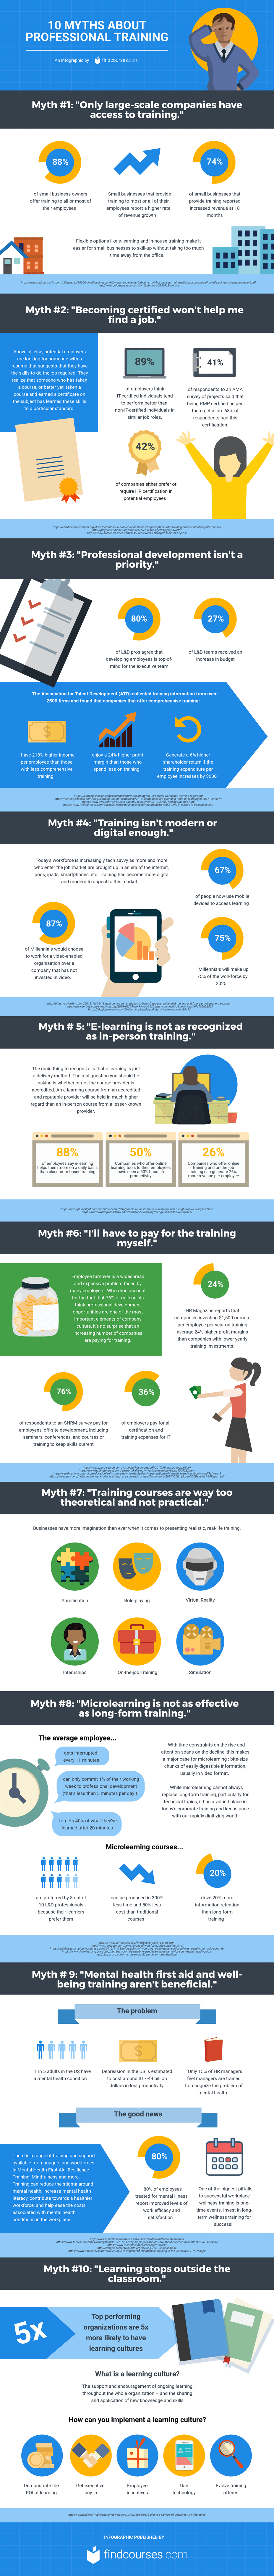 10-myths-about-professional-training-infographic-plaza